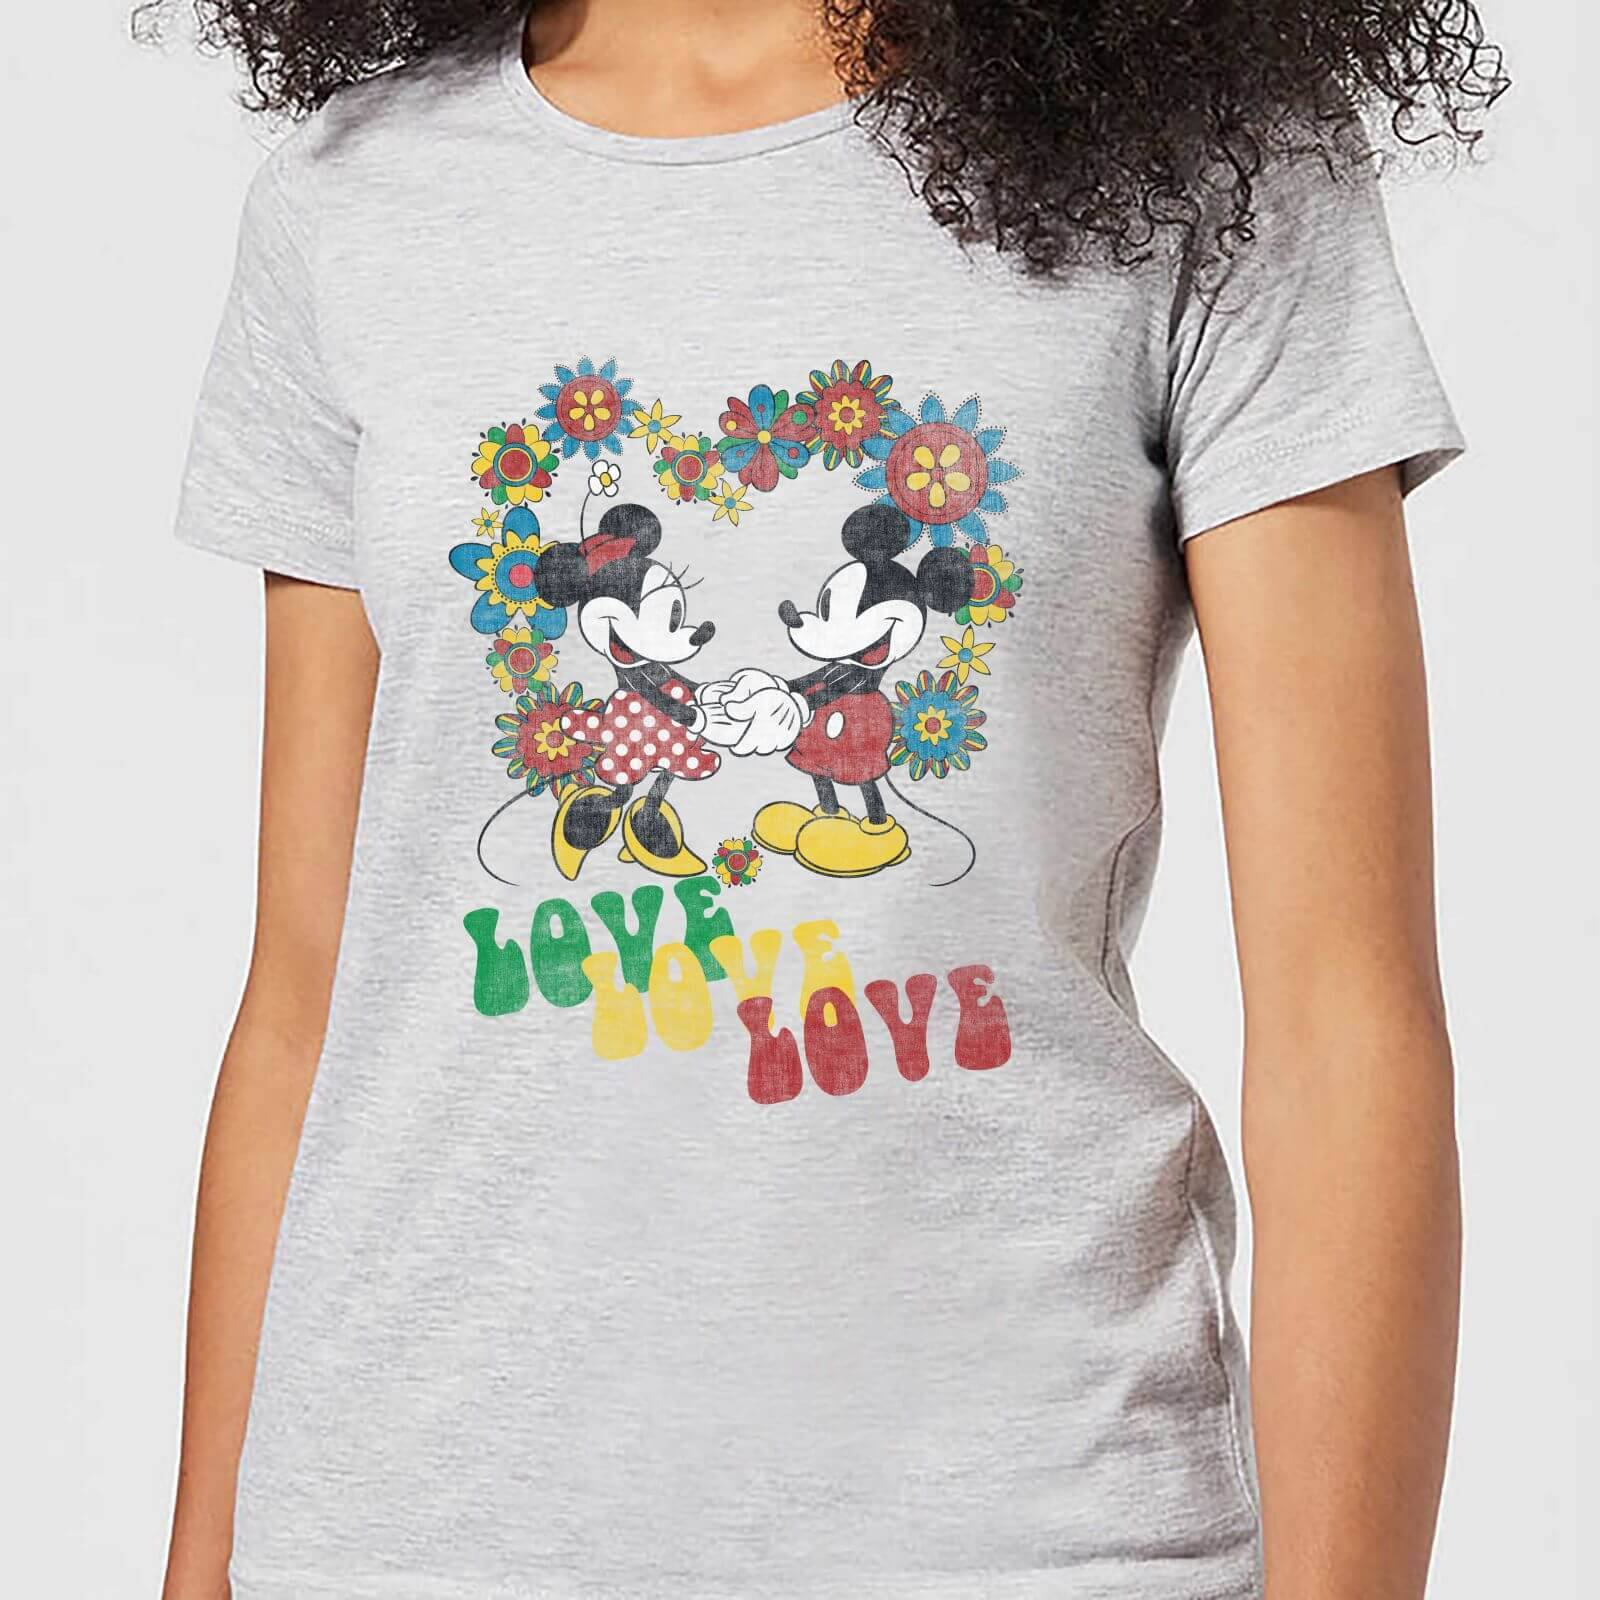 Disney Mickey Mouse Hippie Love Women's T-Shirt - Grey - 4XL - Grey